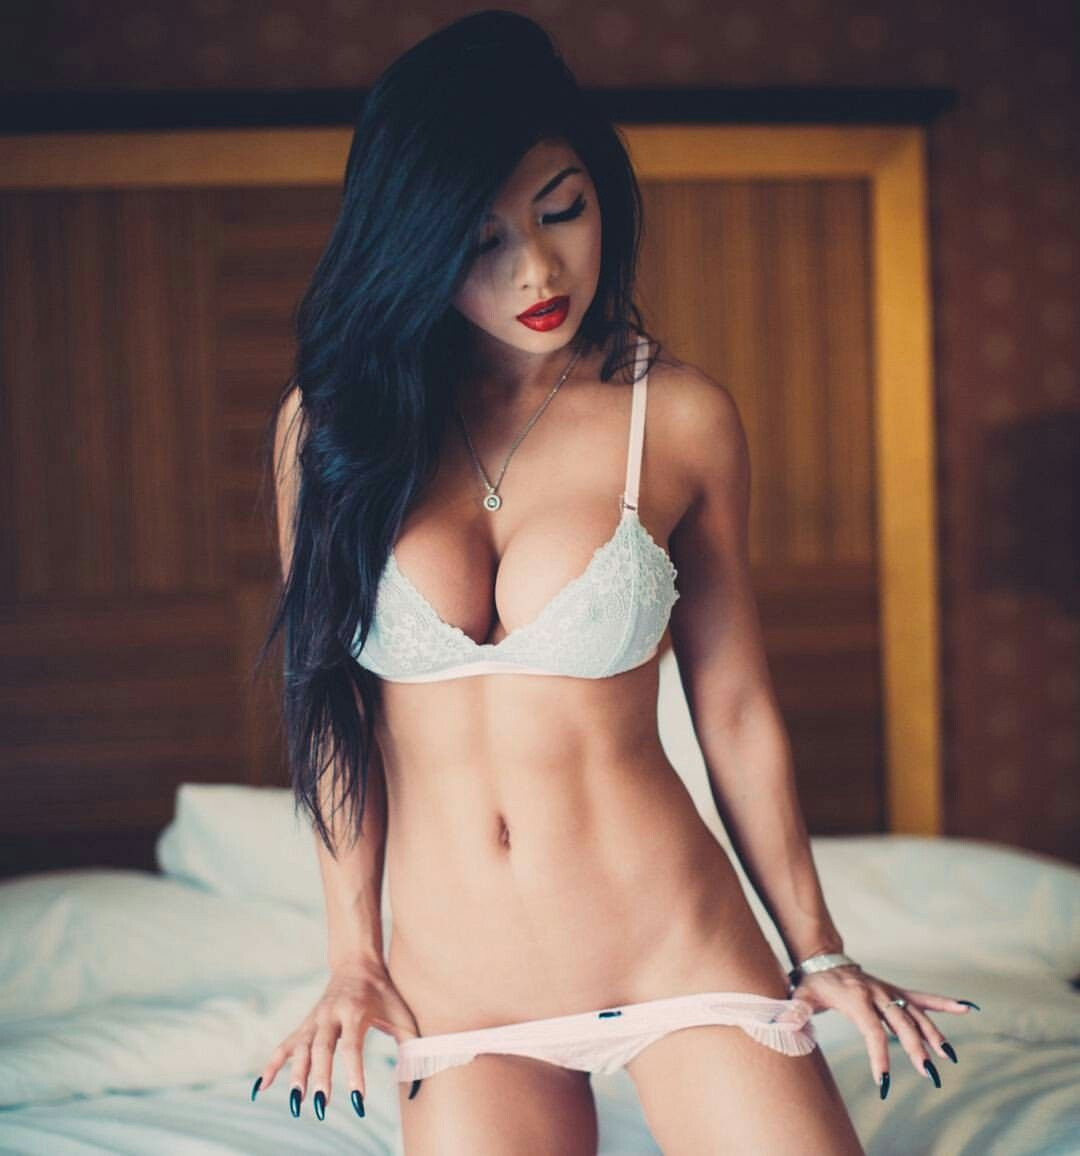 pinjeffrey ruden on fantastic asians (18+) | pinterest | asian